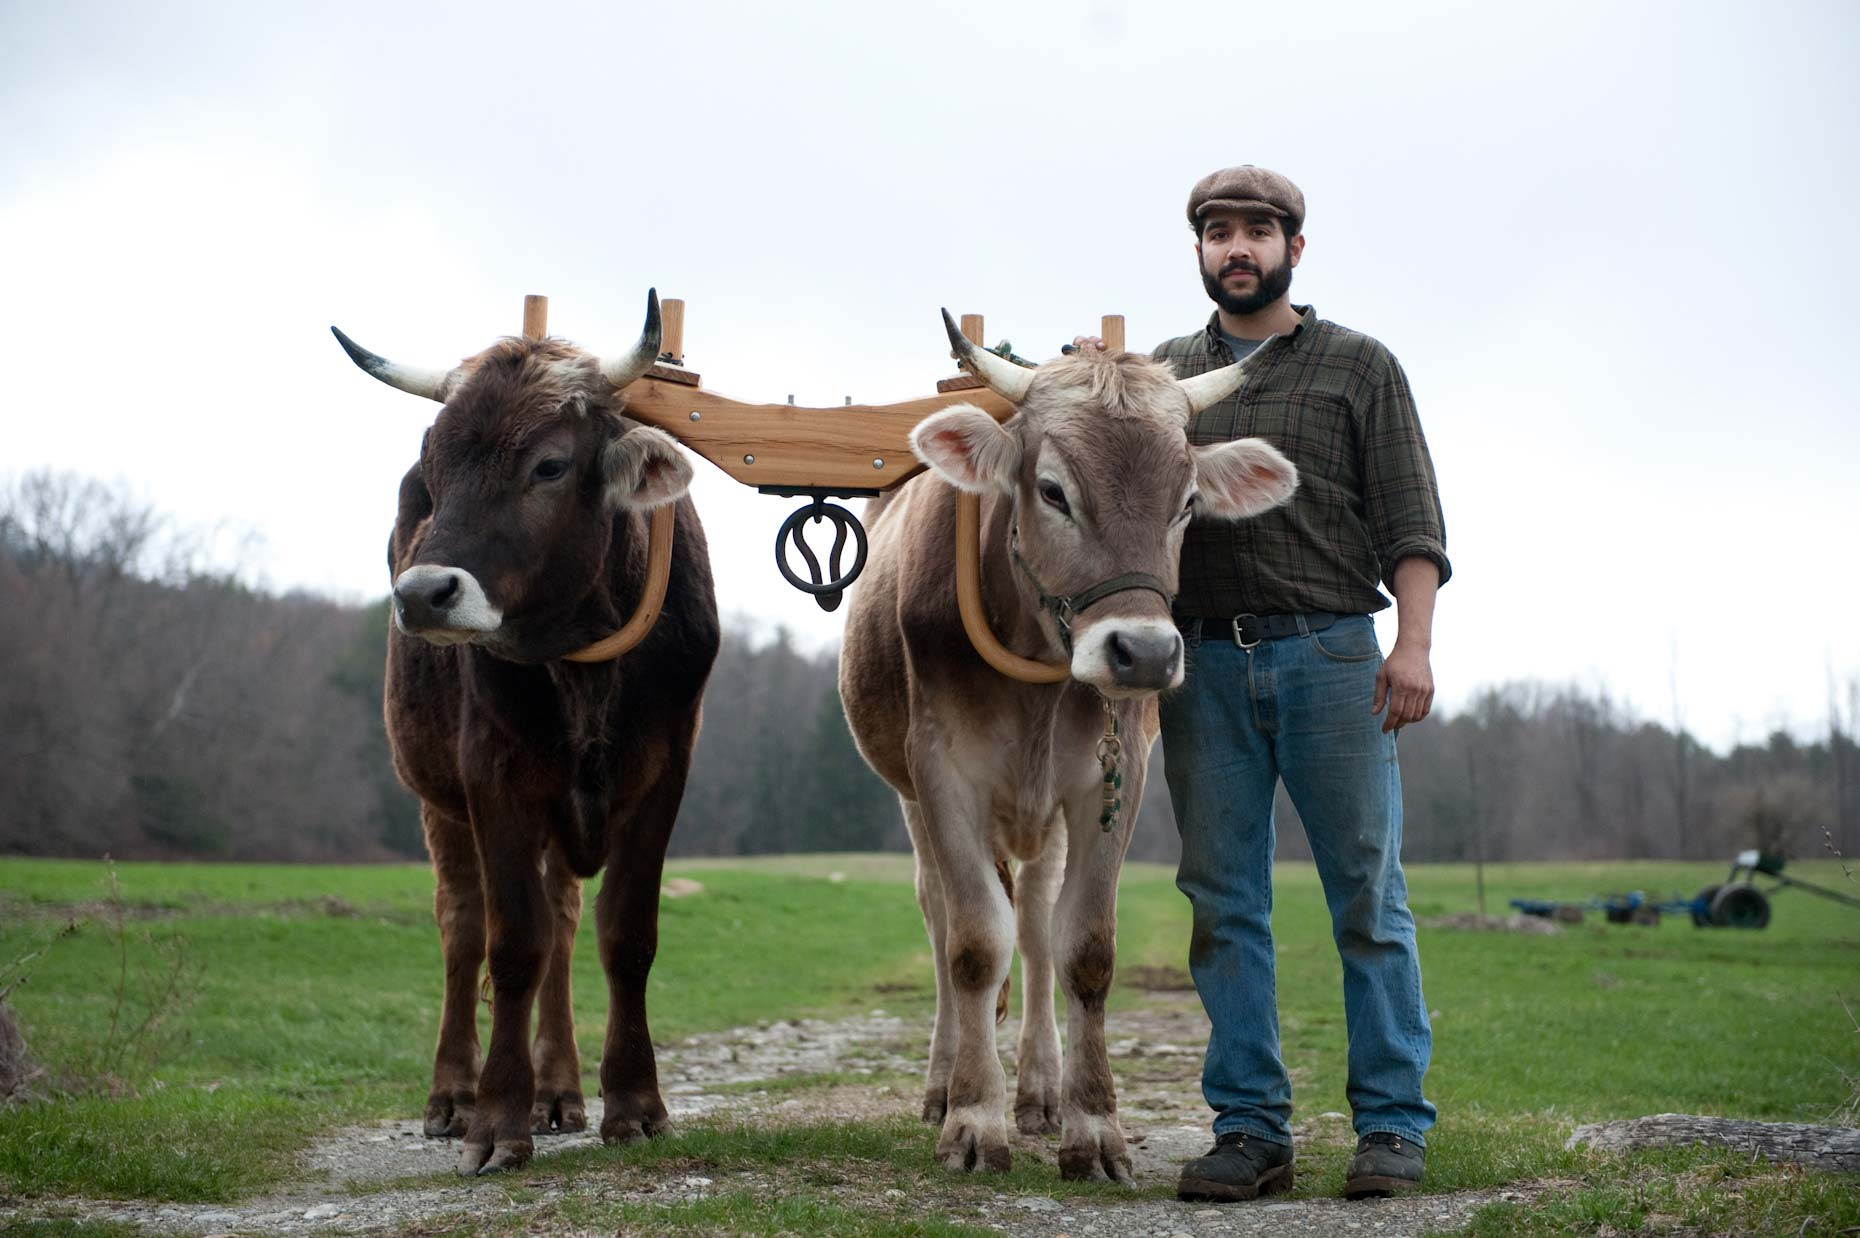 Farmer and oxen on farm